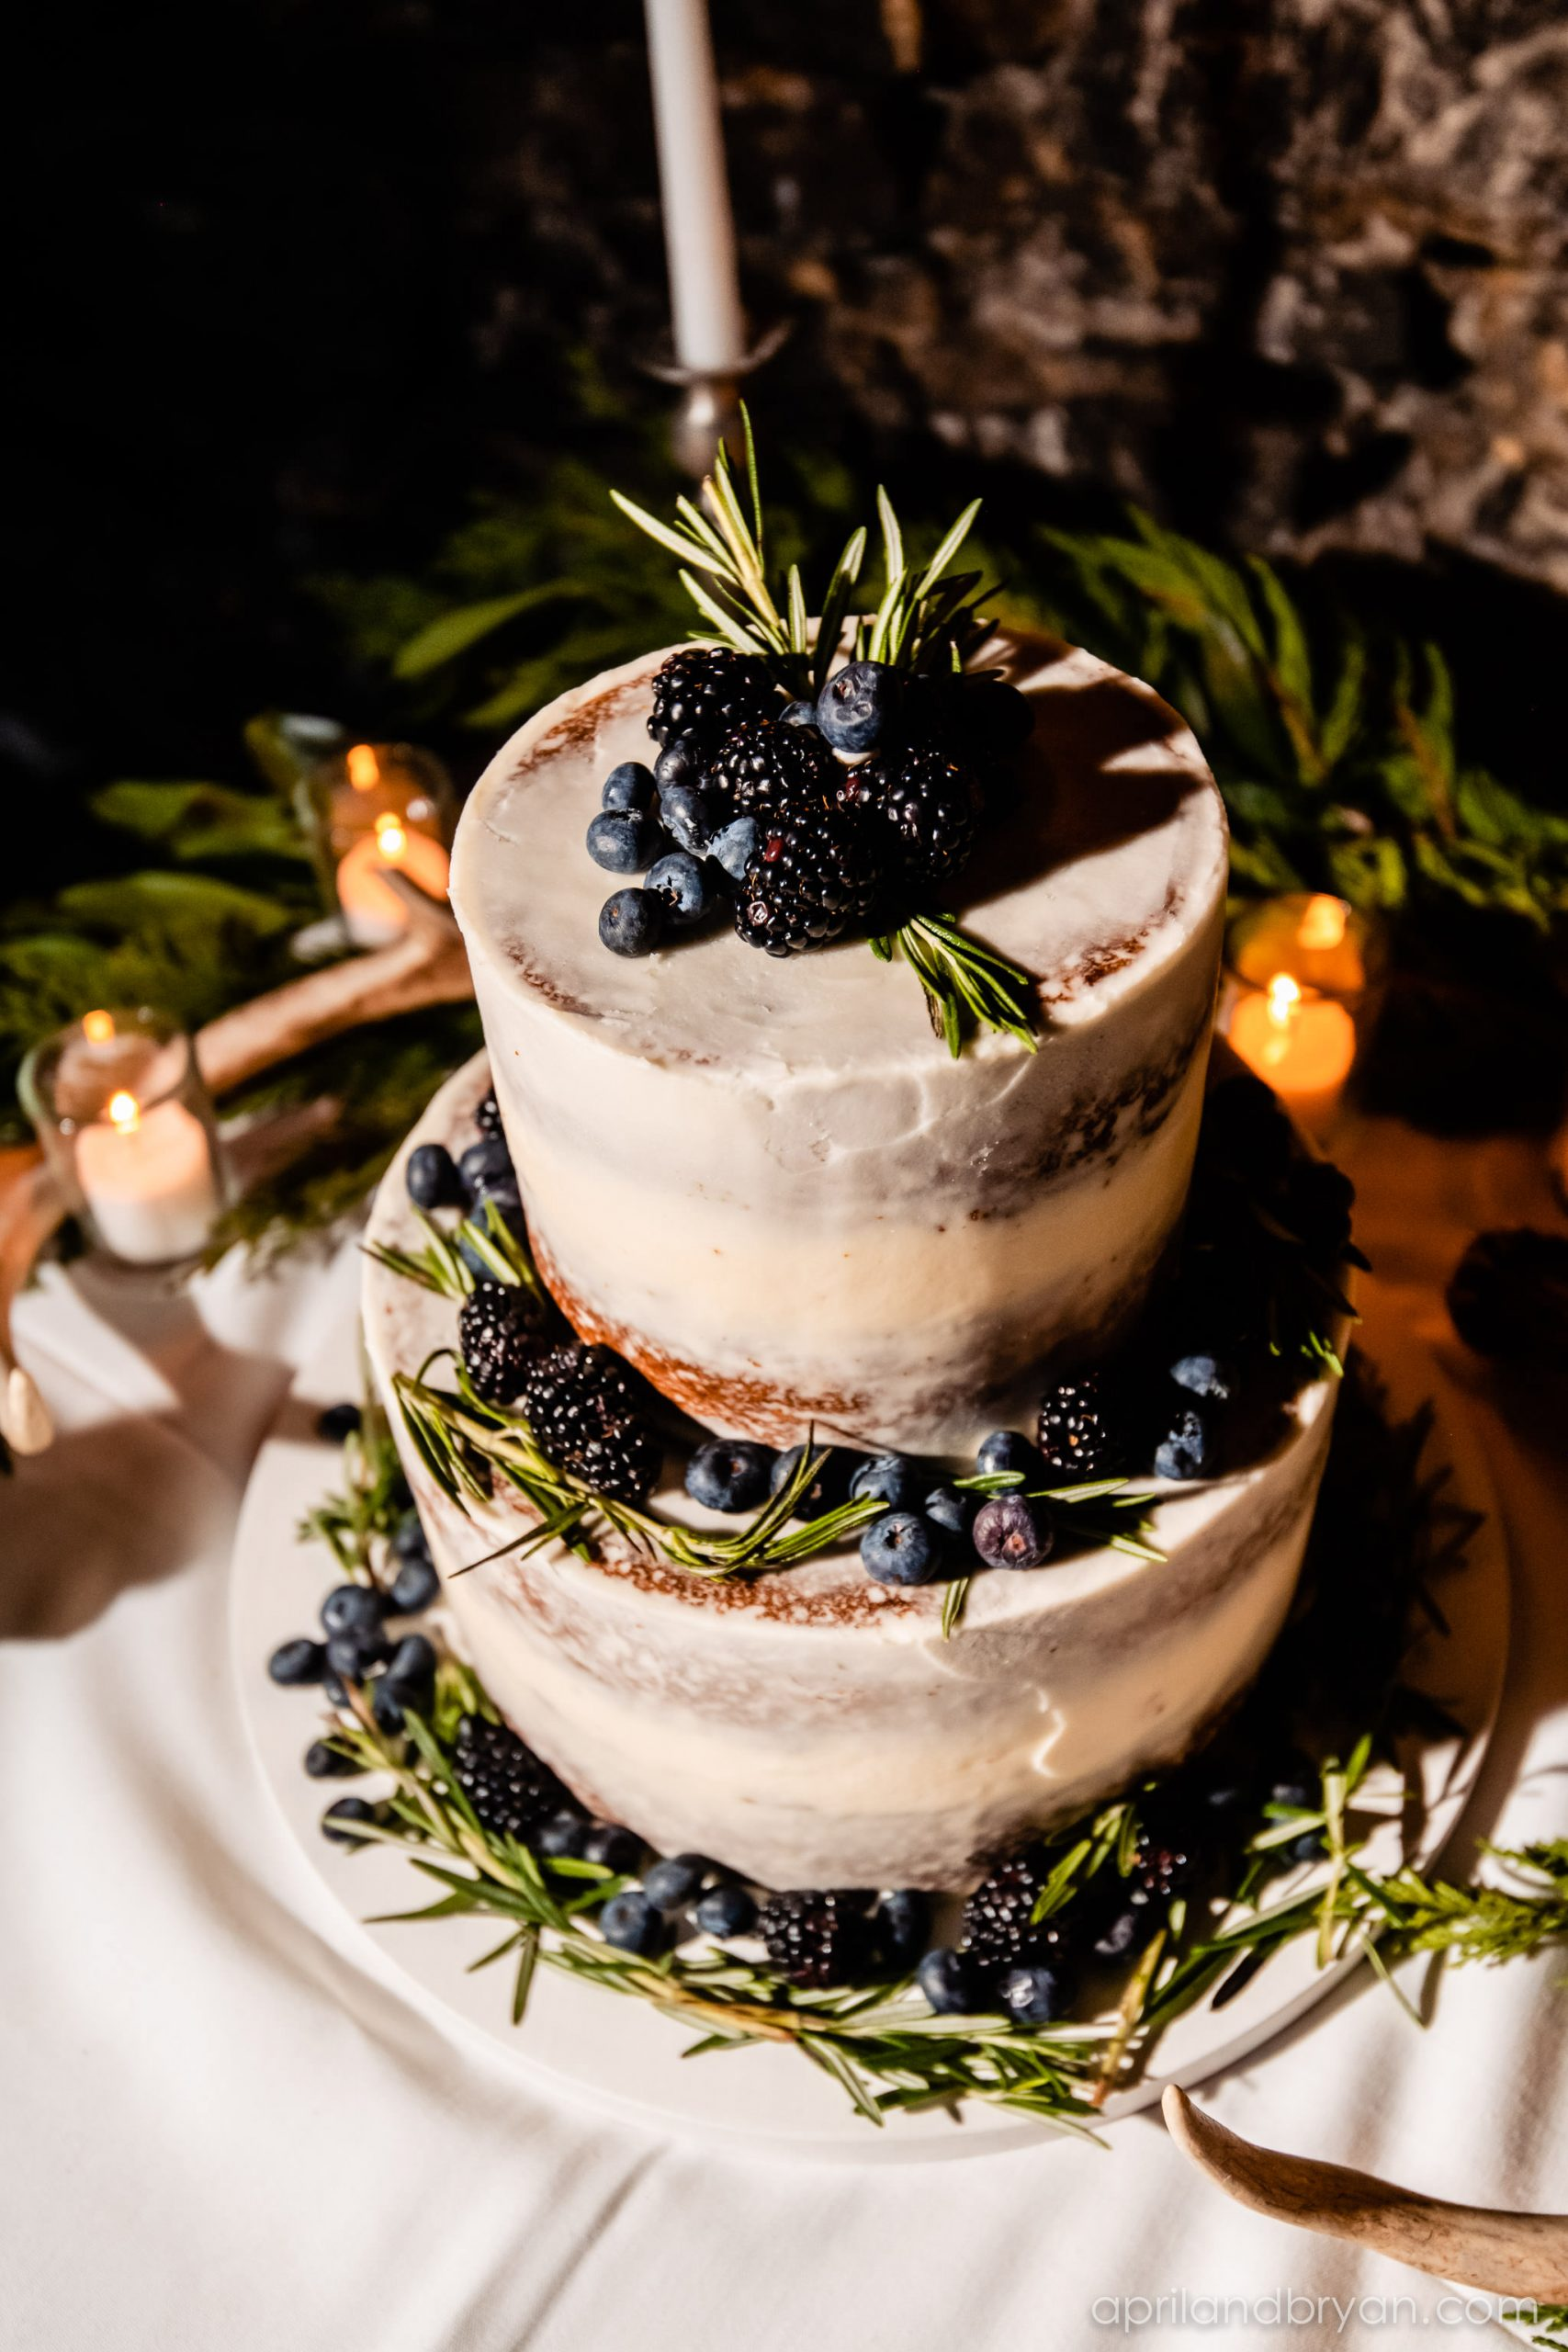 A barely naked cake tied in with the theme and garnished with berries and pine add that special touch. Hannah and Ethan Farrell had their classic romantic styled wedding held at their home in Mount Joy, followed by a reception at the catacombs underneath Bube's Brewery. Photographed by April & Bryan Photography, the couple had the opportunity to showcase their early 1900s style and accommodate a small guest list. Featured on Dream Weddings.